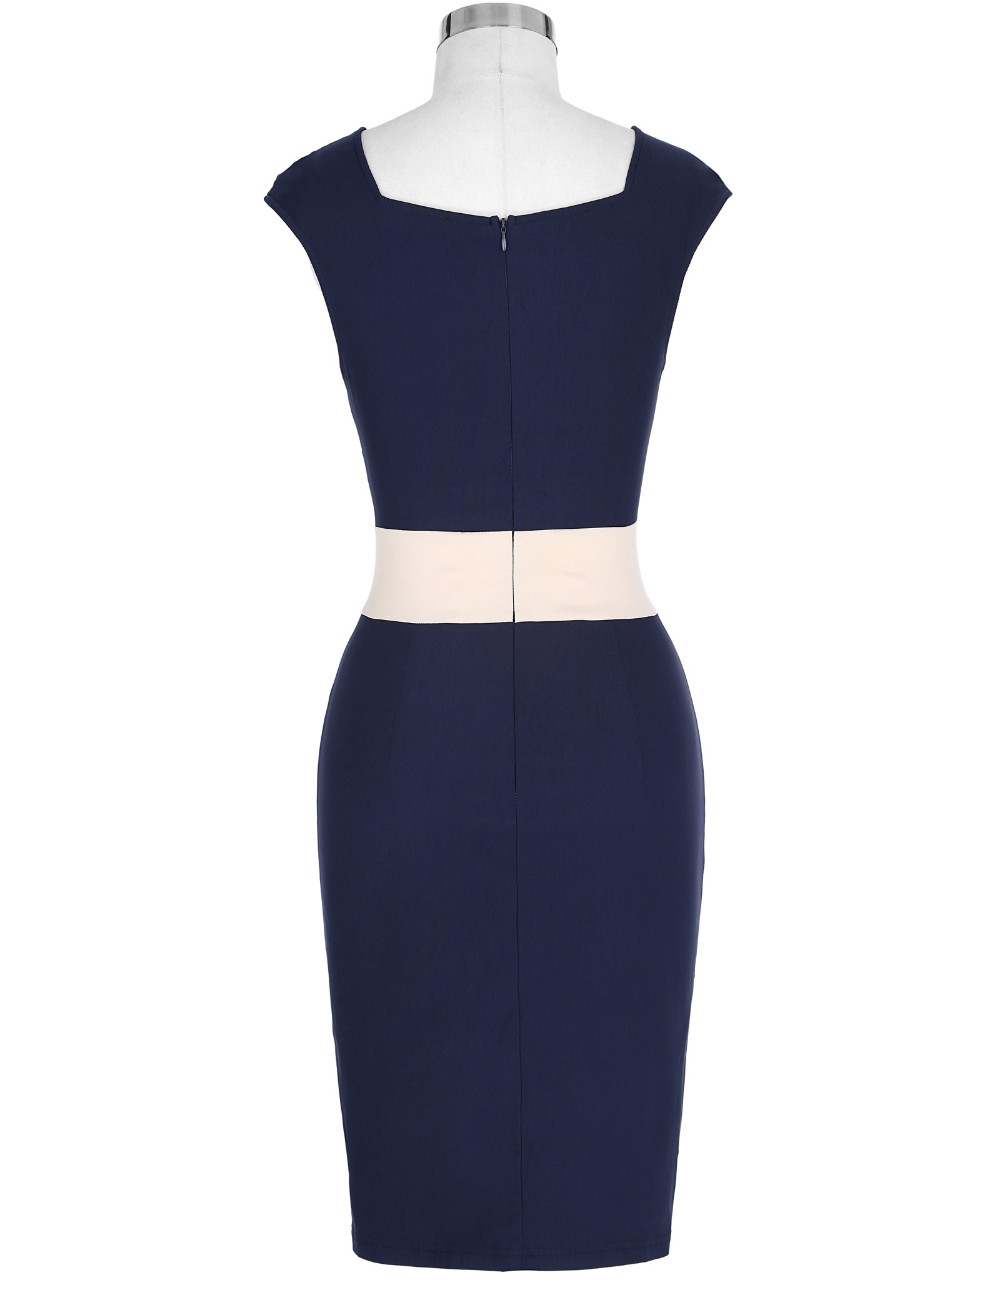 Retro Vintage Sleeveless Crew Neck 2017 Sexy Hollowed Back Cotton Navy Blue Party Dresses Vestidos Casual Office Bodycon Dress 9